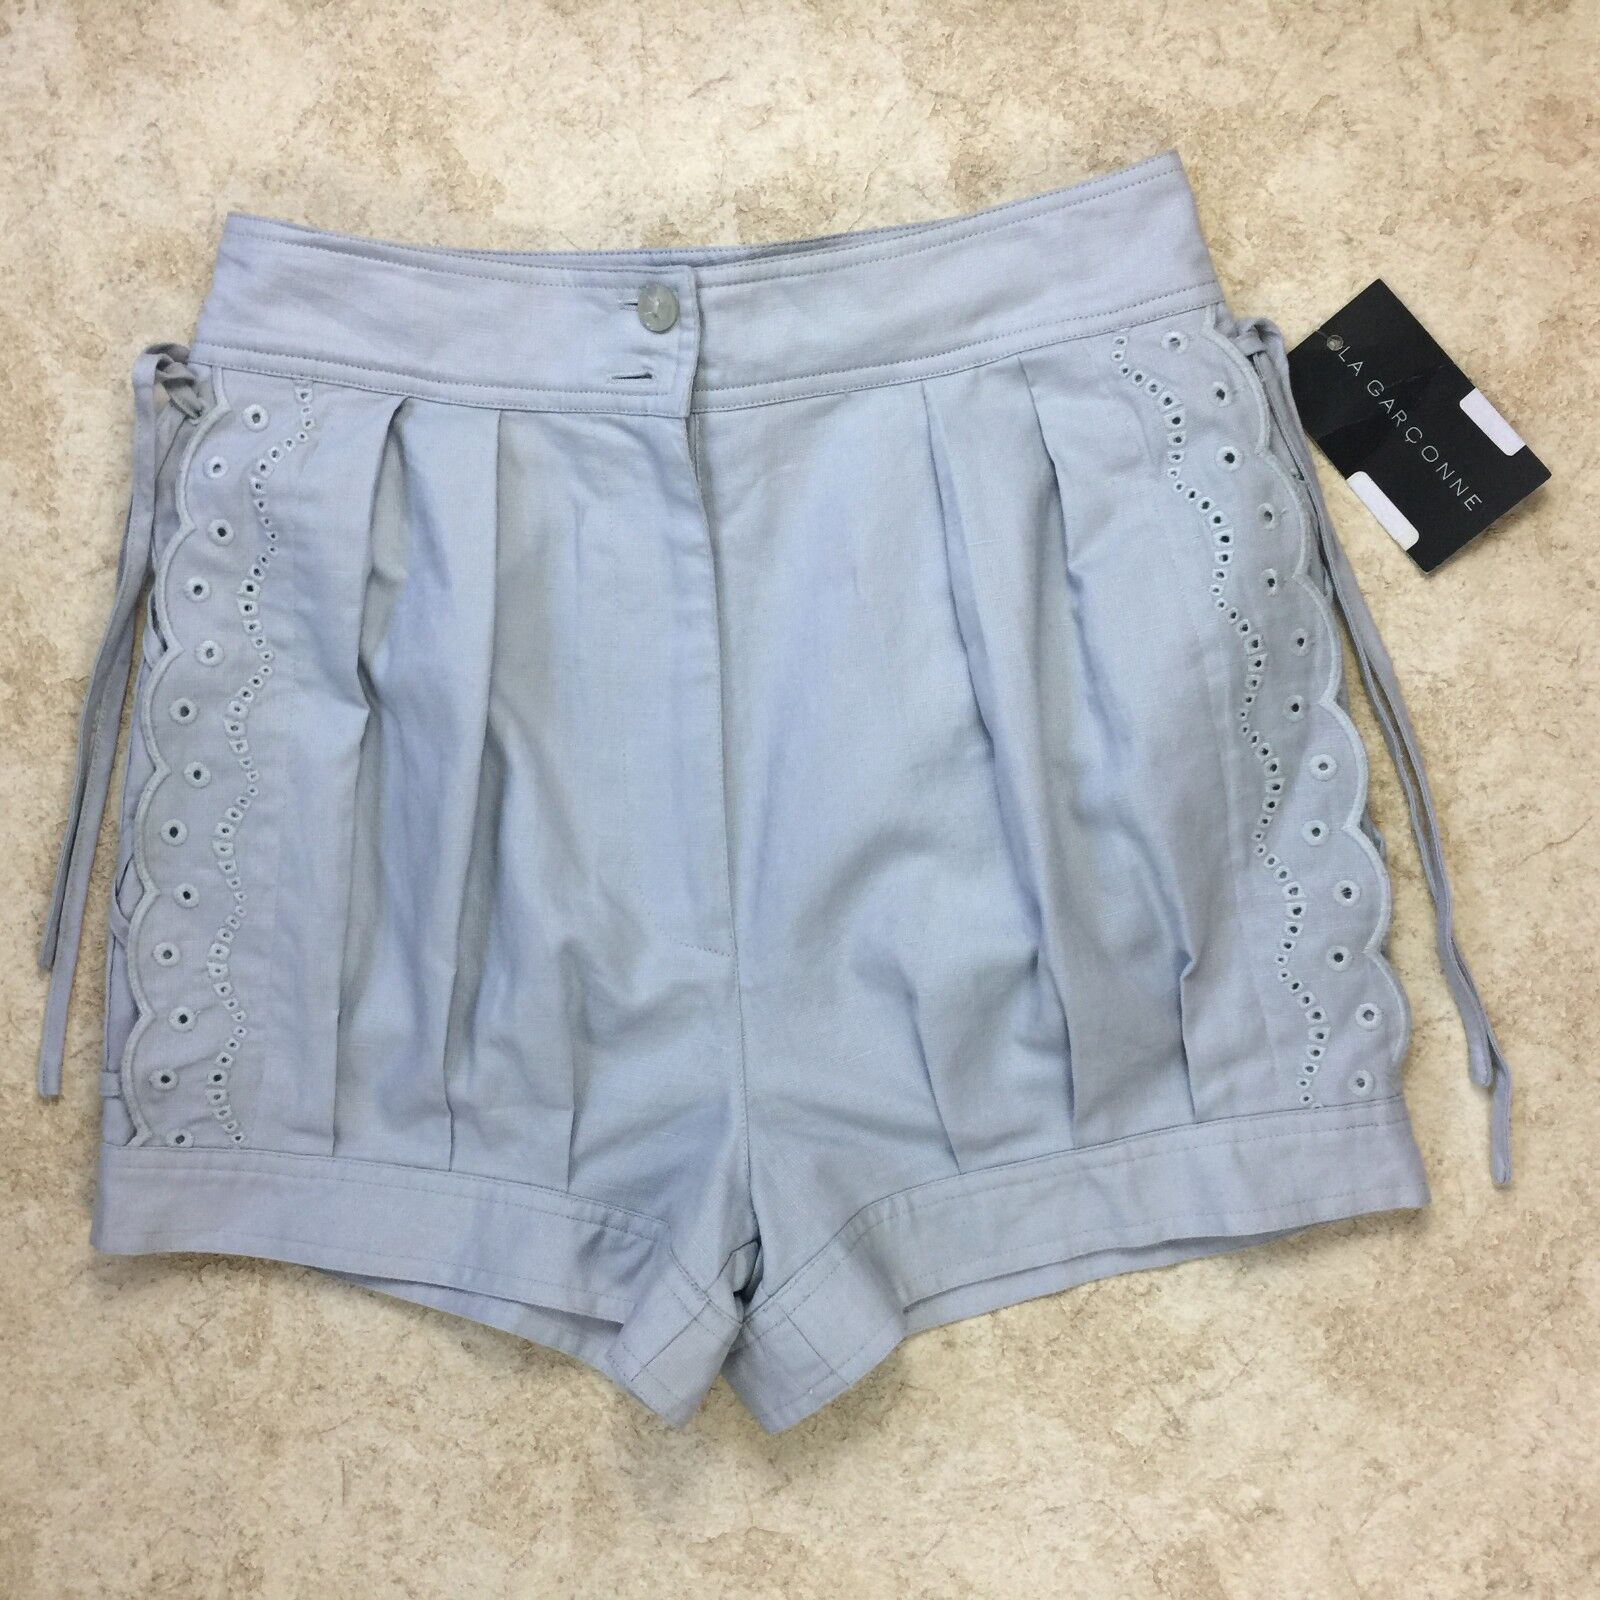 SEE BY CHLOE Women's Old bluee Shorts Size 4 NWT